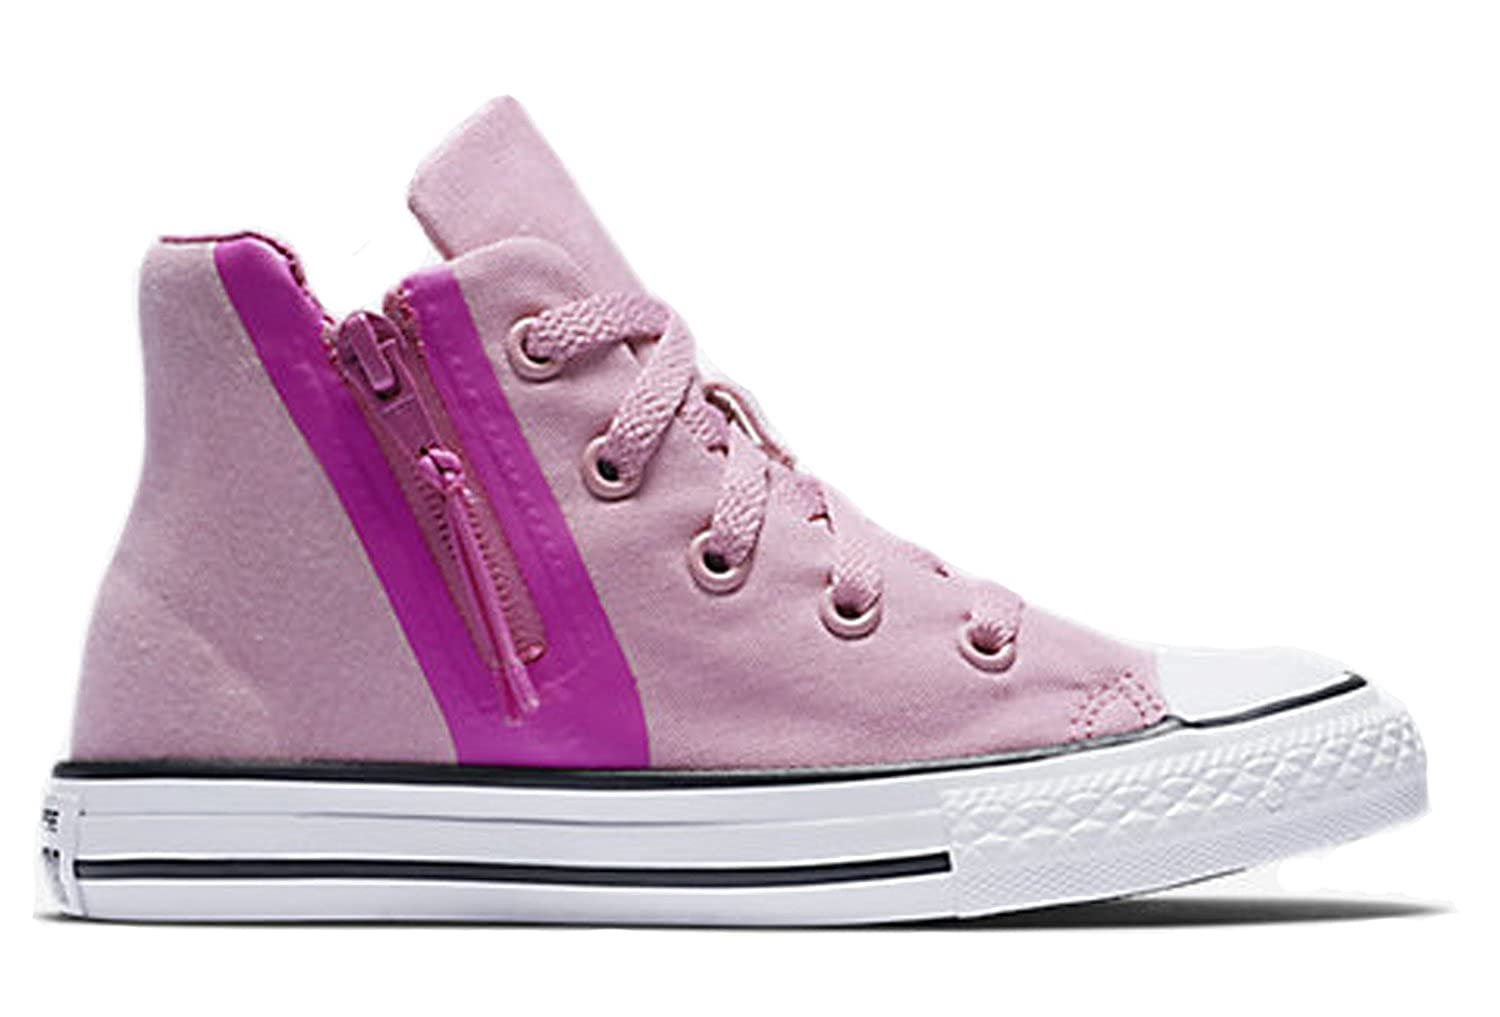 Converse, 659993F, Kids, Sport Zip hi, Light Orchid (Pink) B073RNFN3M 11.5 M US Little Kid